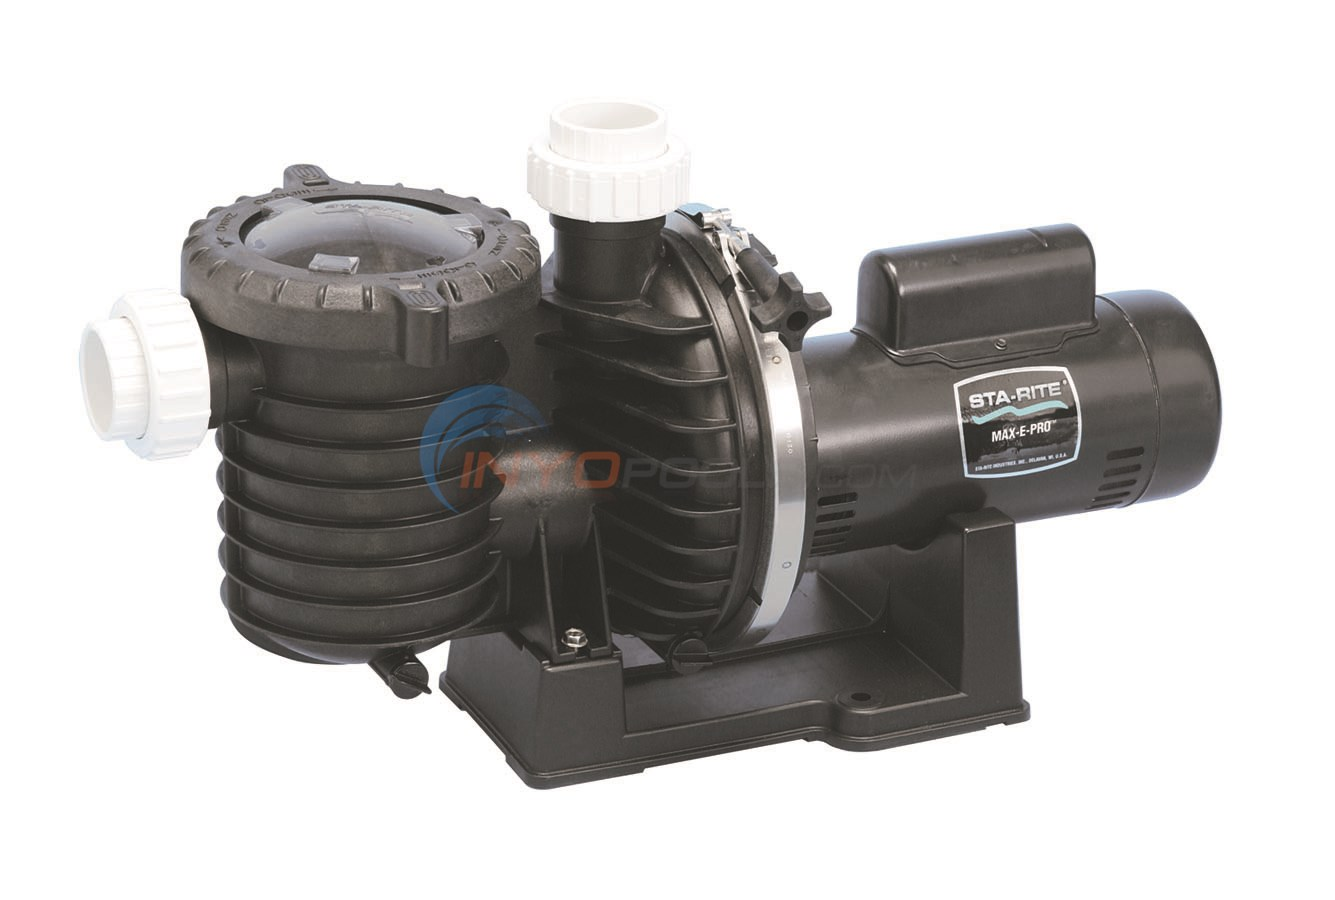 Sta-Rite Max-E-Pro 1/2 HP Full Rate Energy Efficient - P6E6C204L